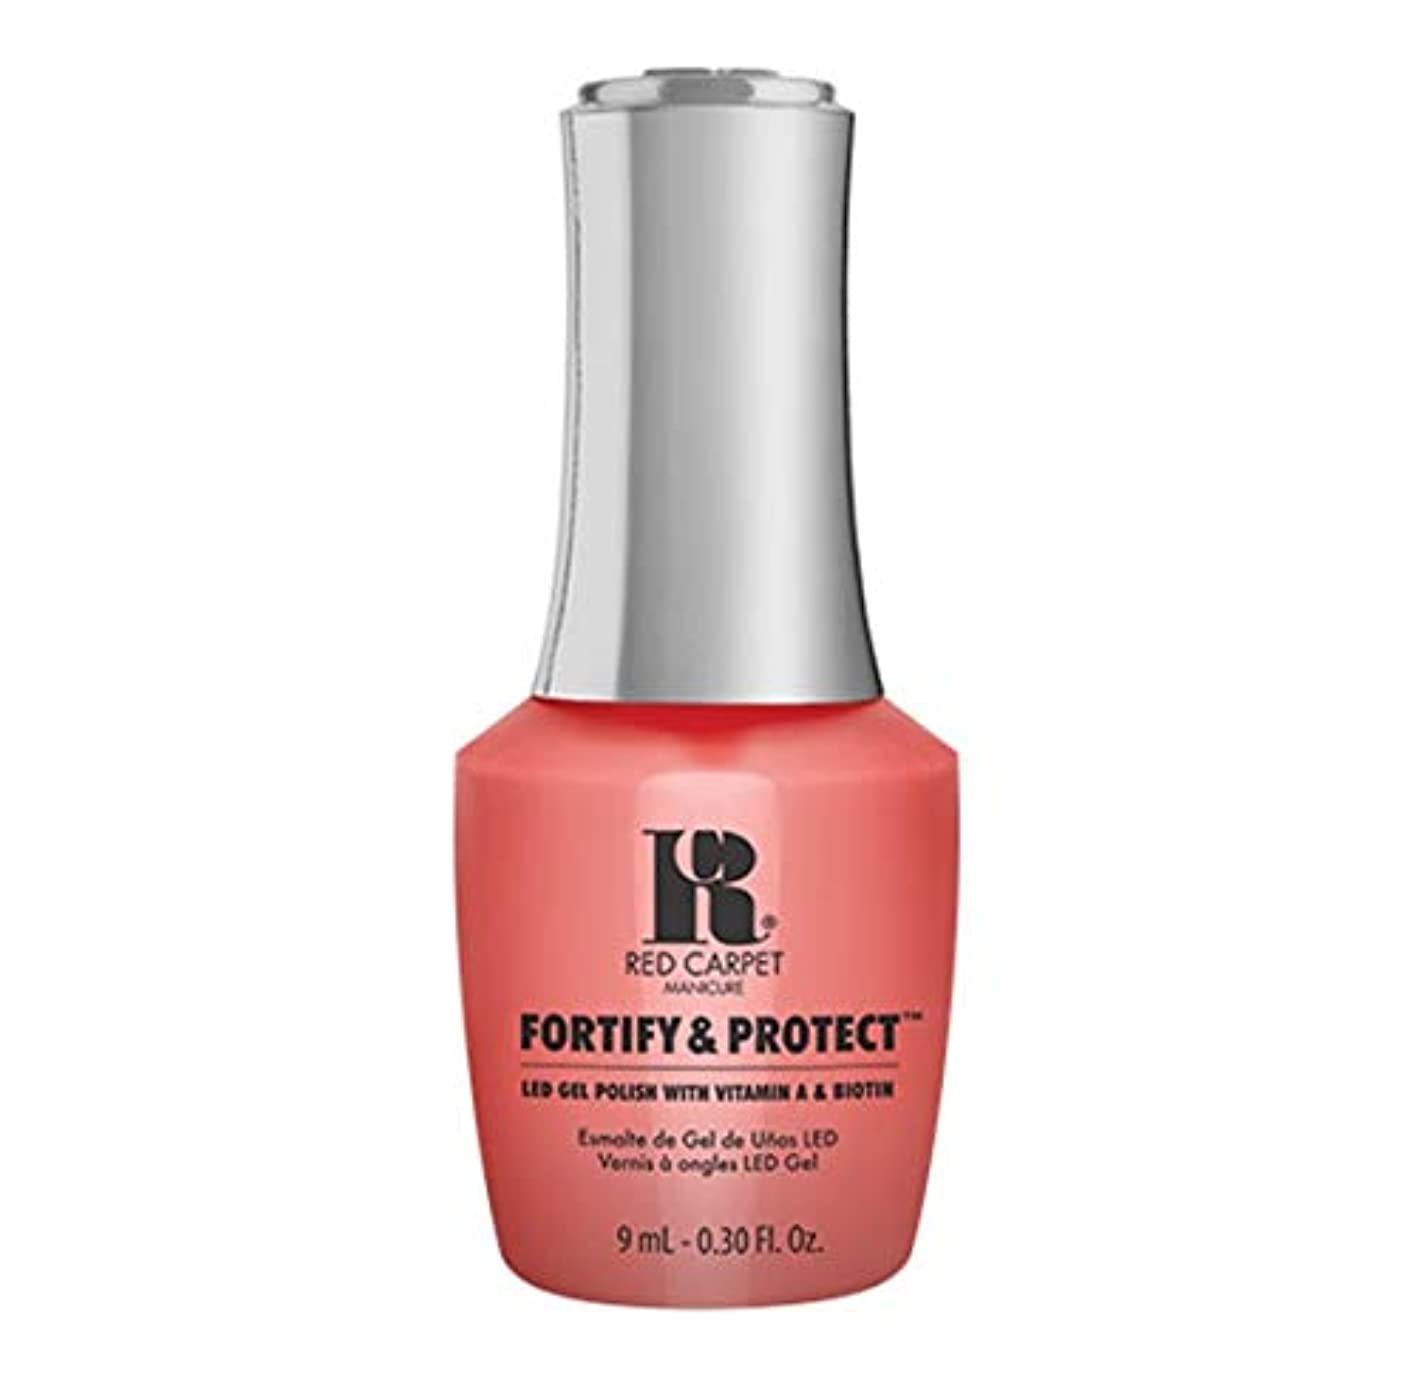 仲良し重々しい織機Red Carpet Manicure - Fortify & Protect - Flashing Lights And Neon Signs - 9ml / 0.30oz